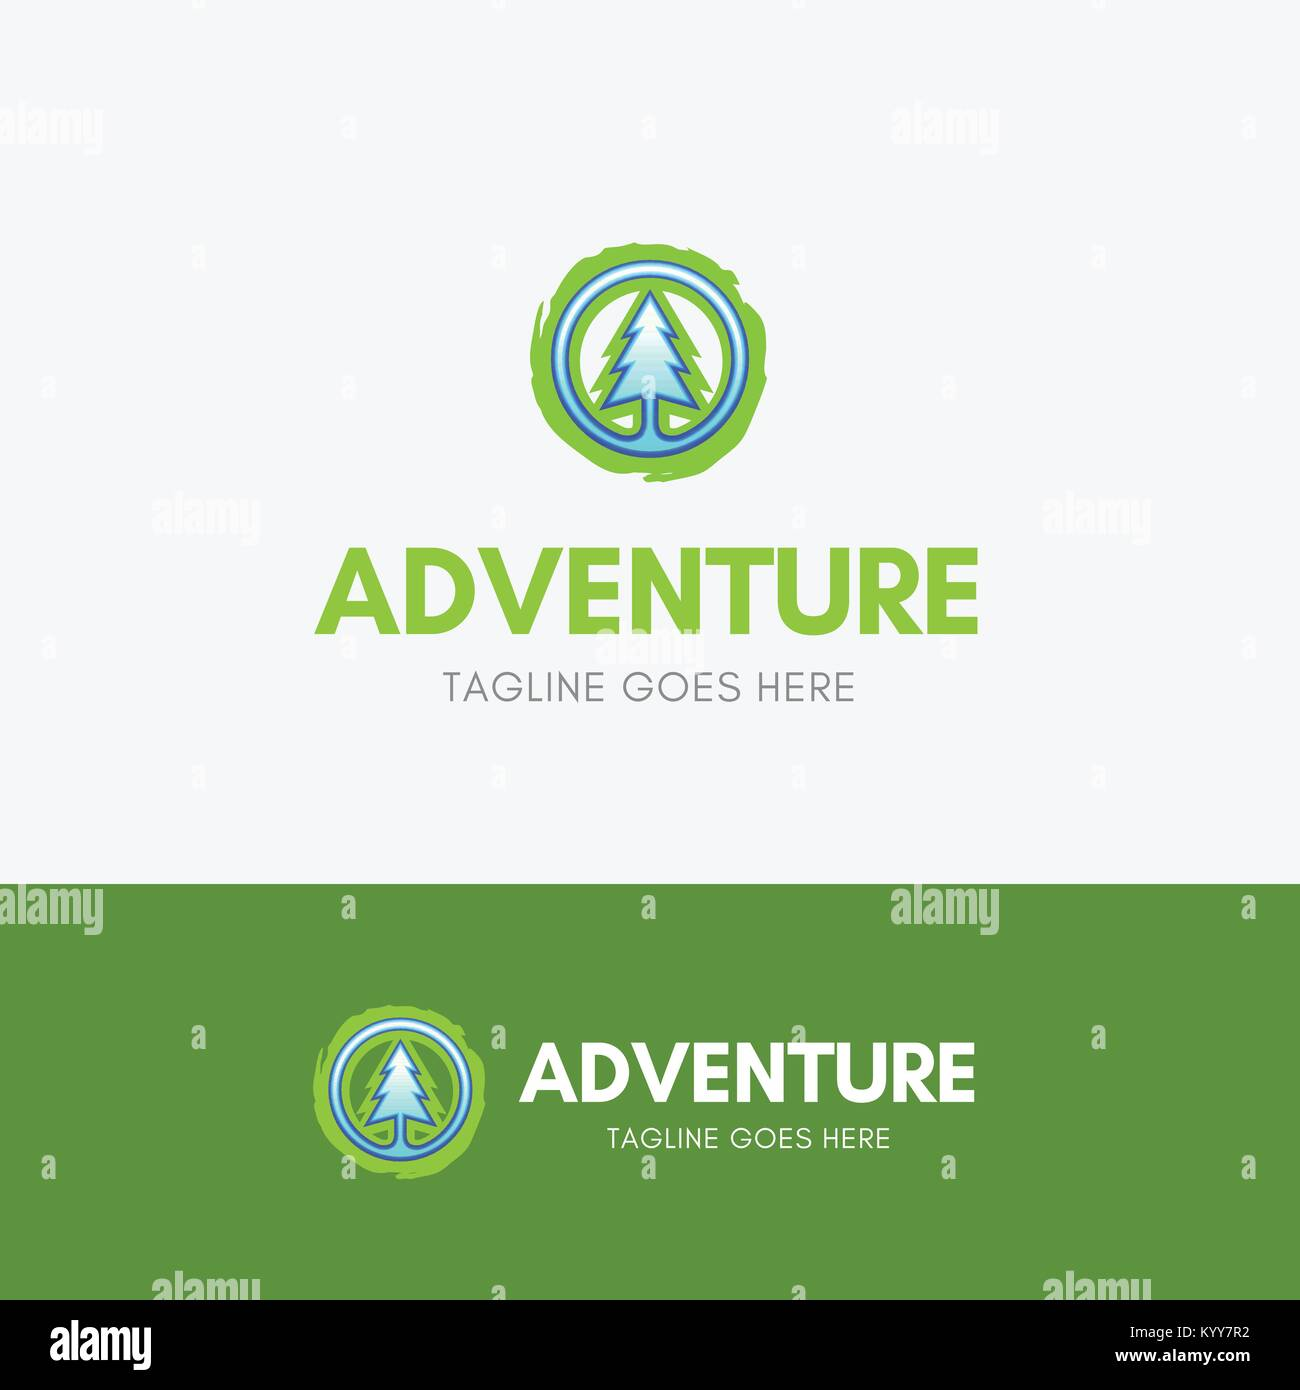 Adventure Logo Template icon with simple pine symbol - Stock Vector